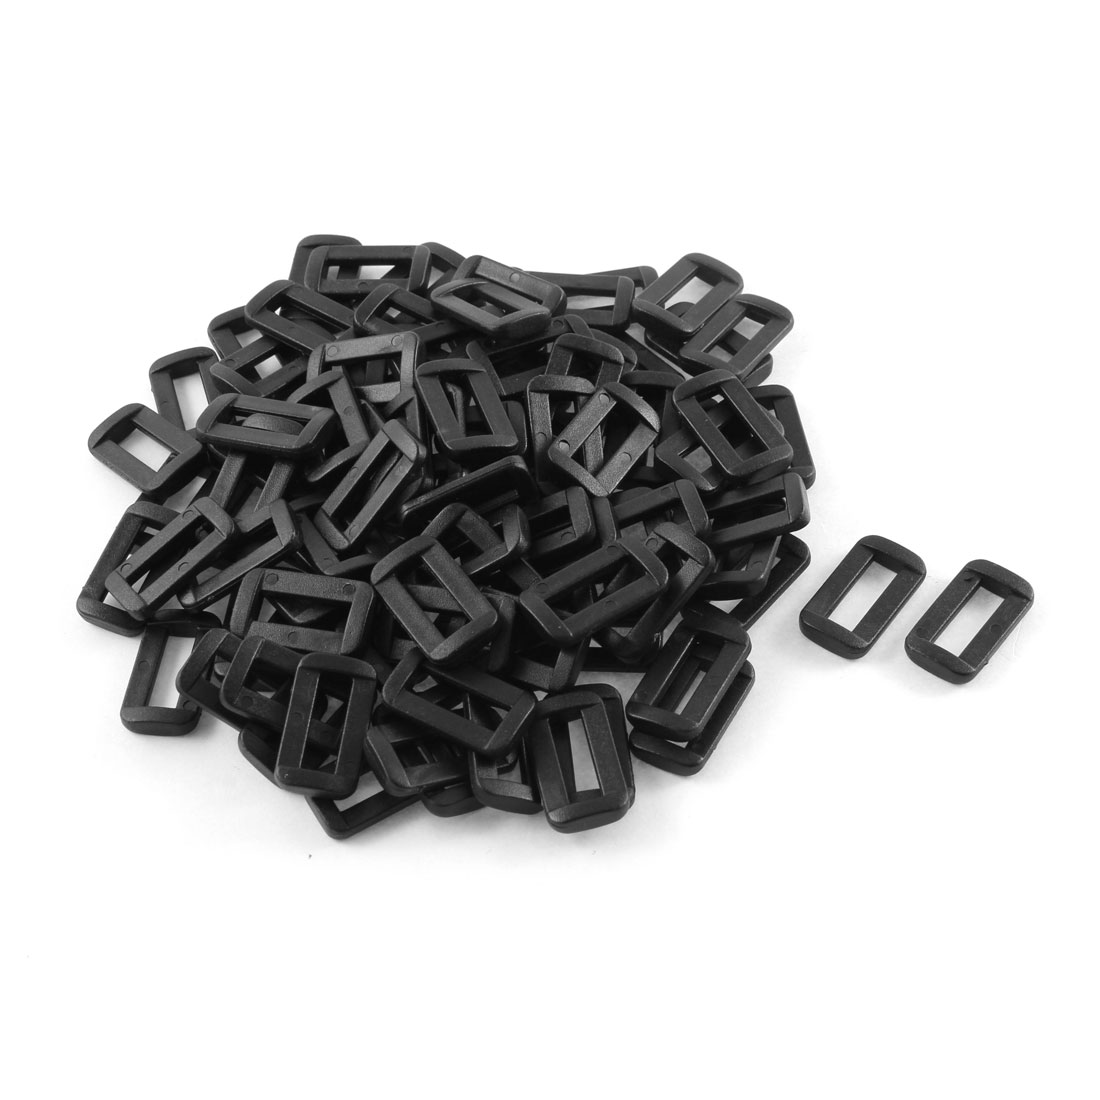 100pcs Black Plastic Bar Slides Buckles for 15mm Webbing Strap